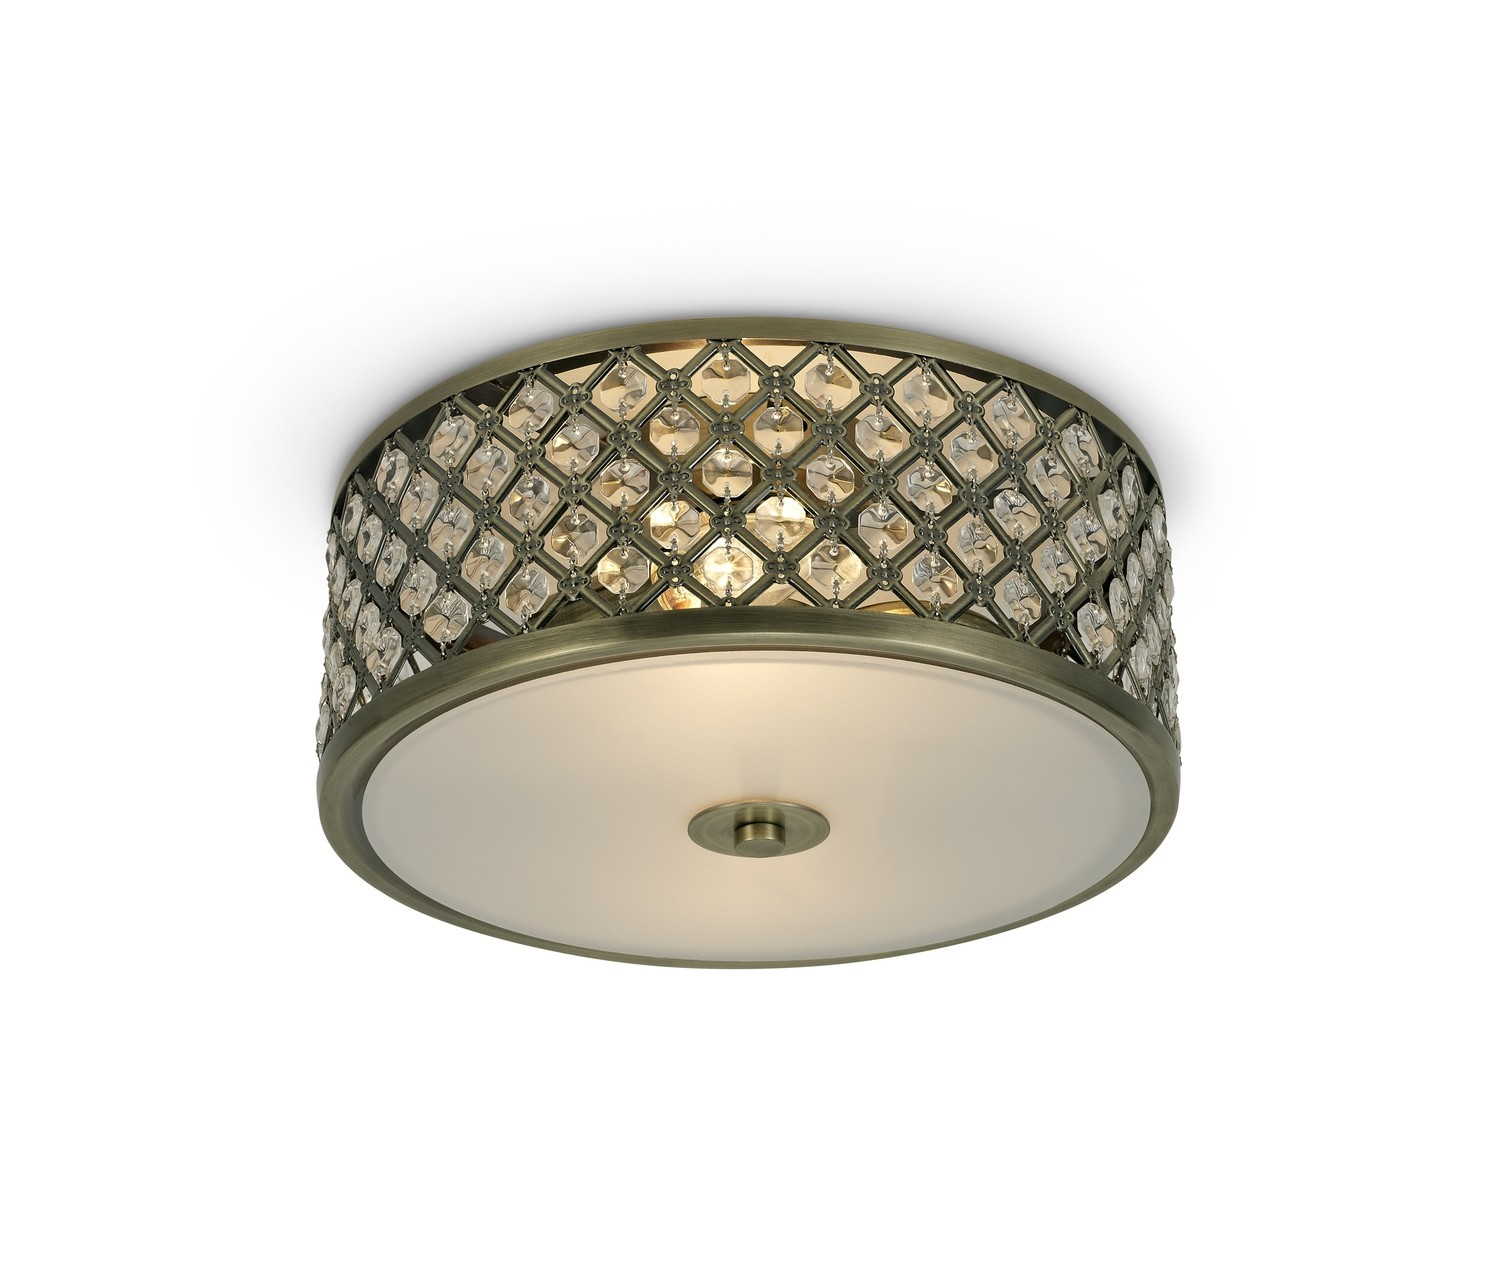 Sasha 2 Light E14, Flush Ceiling Light, 300mm Round, Antique Brass With Crystal Glass And Opal Glass Diffuser